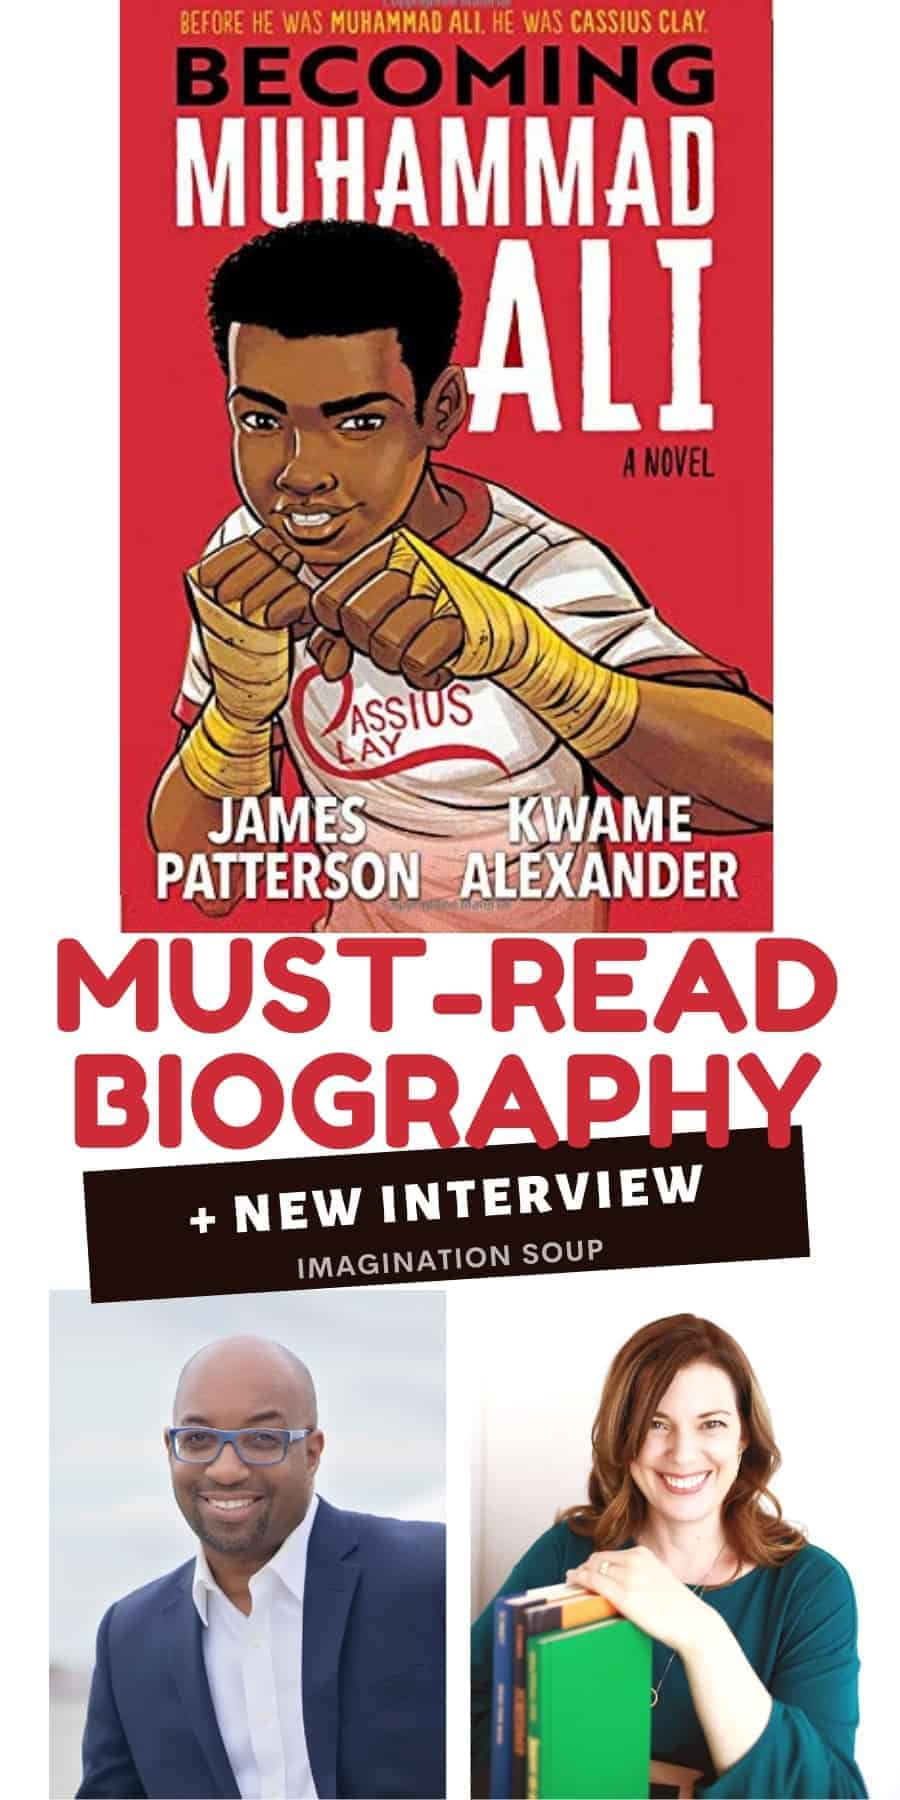 Interview with Kwame Alexander About His New Book, Becoming Muhammad Ali